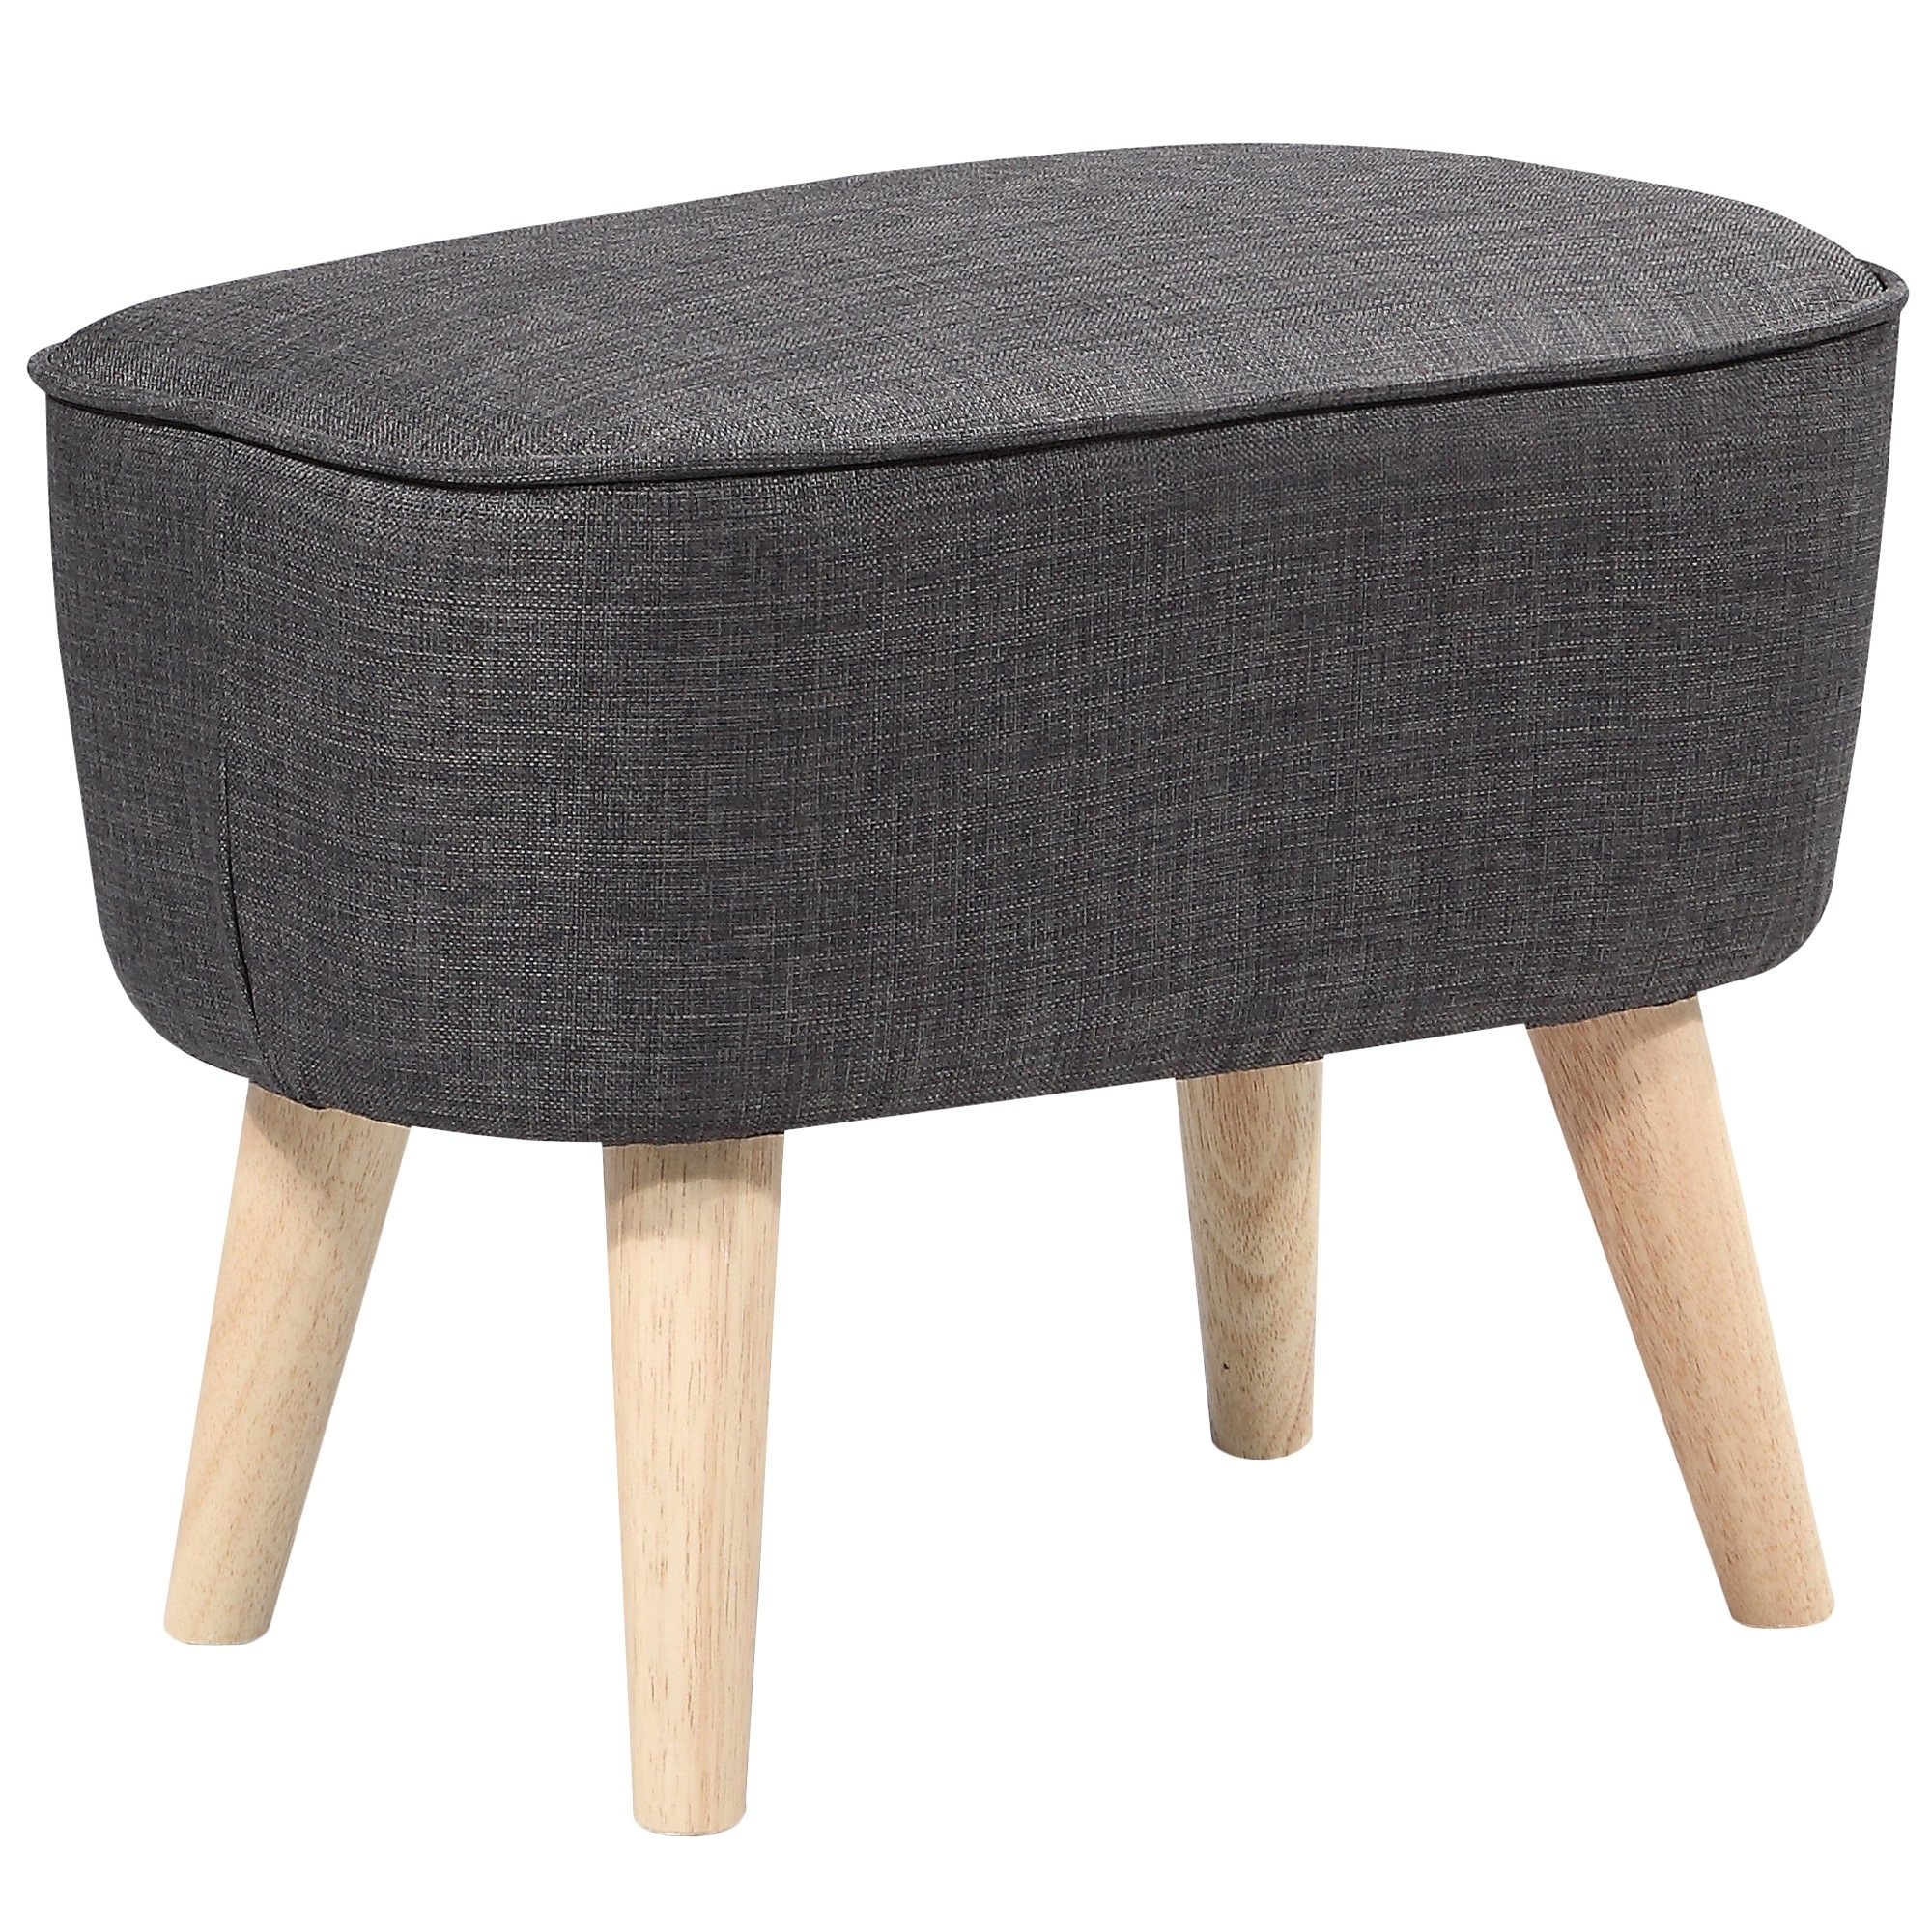 Fiesta Commercial Grade Fabric Foot Stool, Charcoal